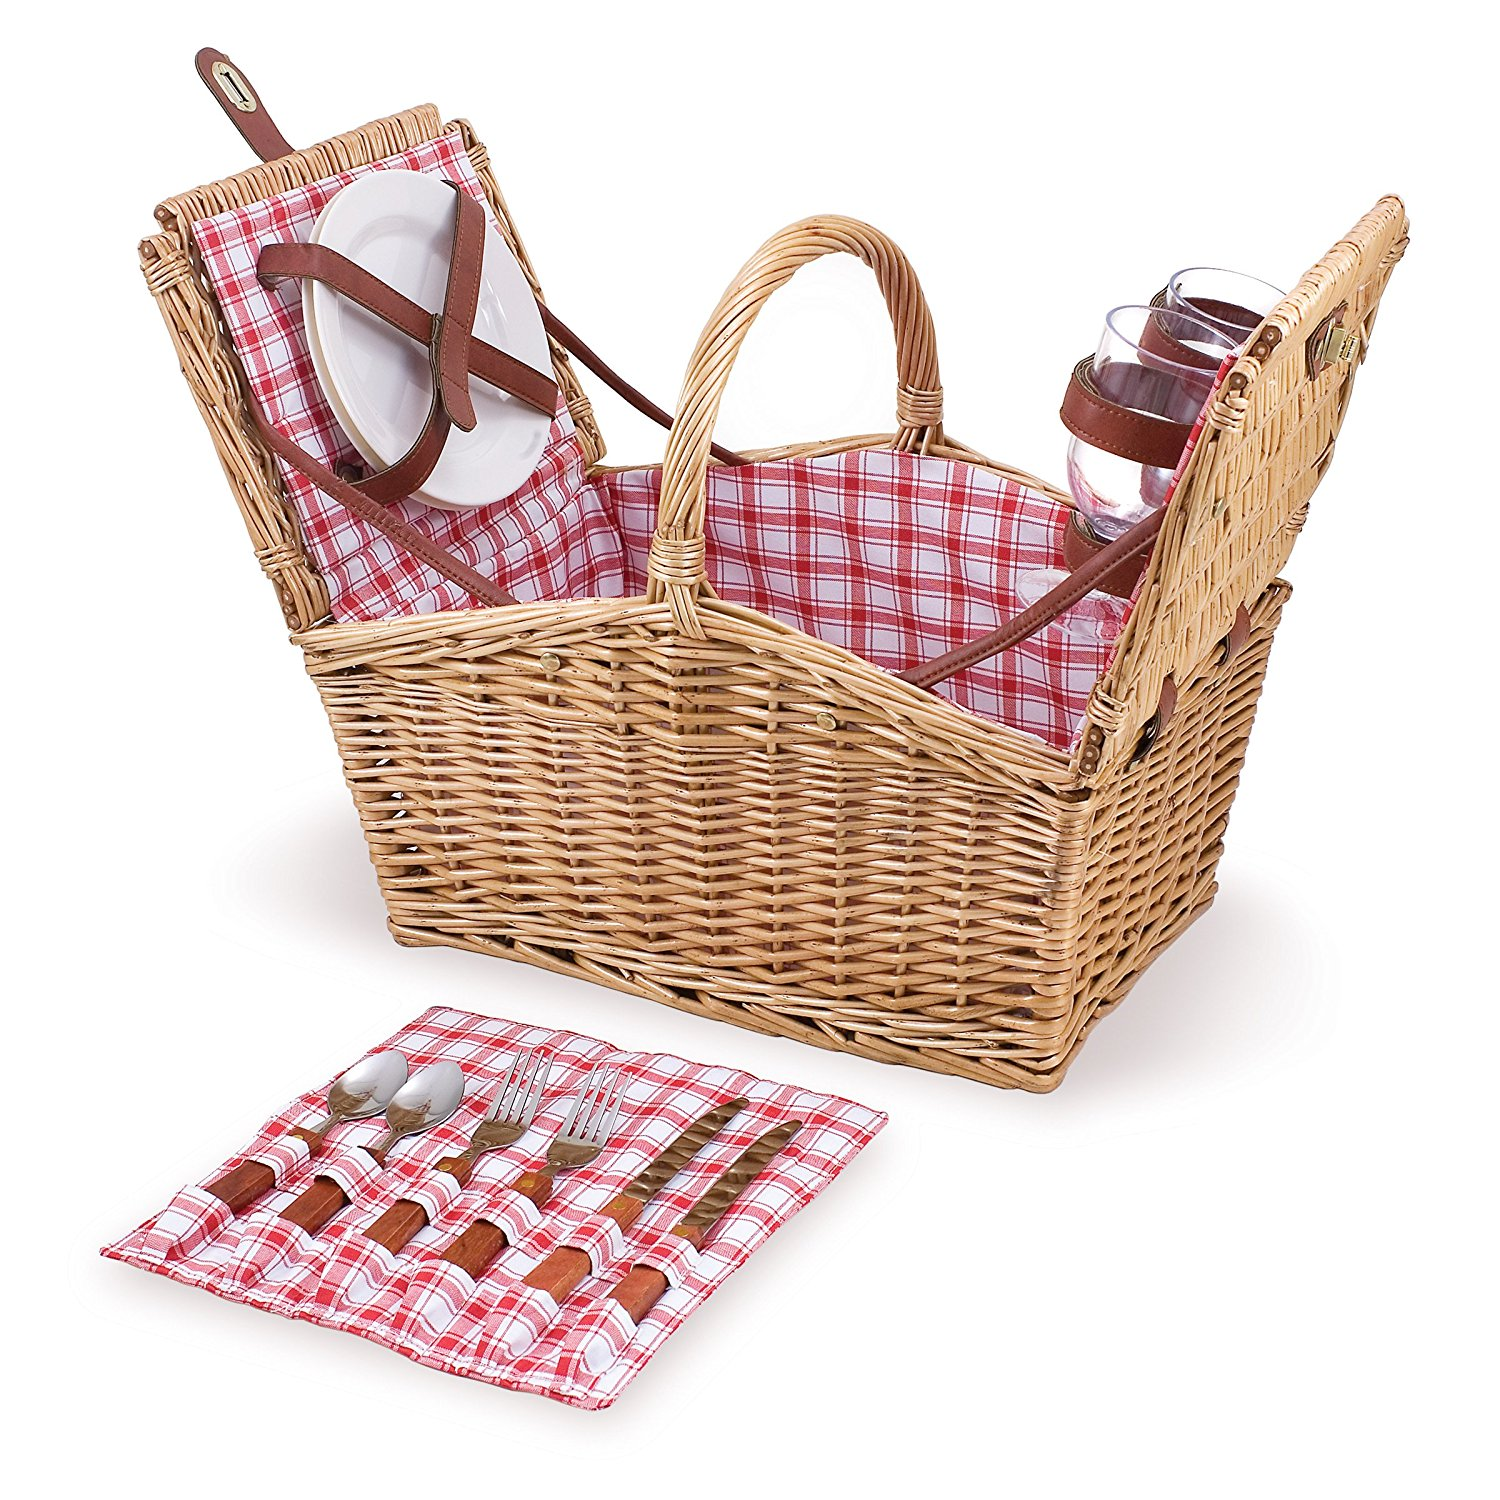 'Piccadilly' Willow Picnic Basket